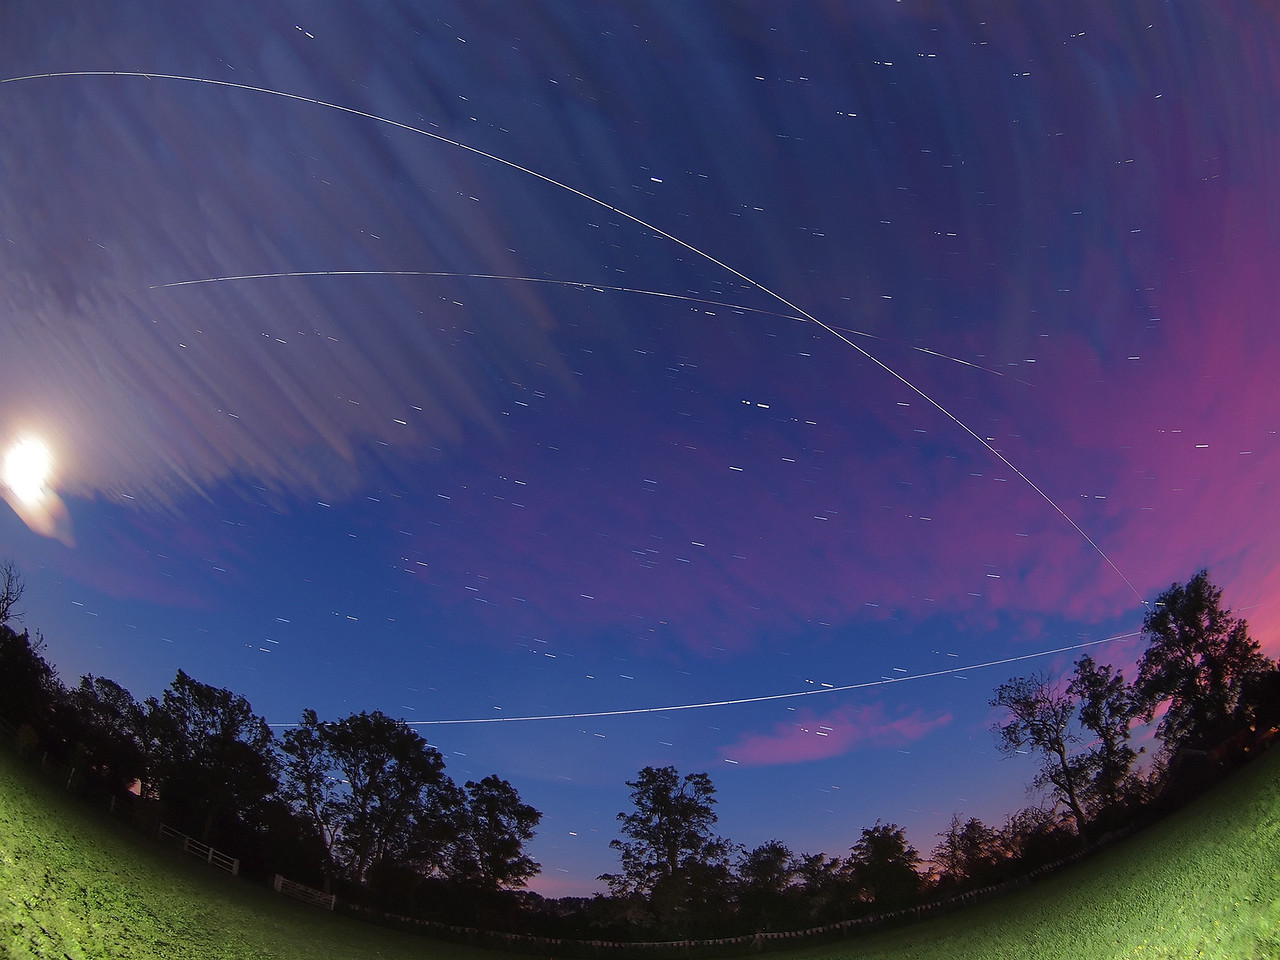 Sat 09th & Sun 10th June 2012. A triple flyby capture of the International Space Station (ISS). There were 4 actual flybys this evening at 2207, 2343, 0119 & 0256 hrs, however the first was clouded out. This shot shows each of the last 3 flybys in one singe composite image. This is how I captured the shot. Firstly I consulted the excellent GoSatWatch app for the exact times of each flyby. I then calculated the best direction to point the camera in order to view all 3 flybys (This was easy since the ISS more or less approached from West and finished East for all.  I therefore bisected and pointed South). I set the camera (Olympus E5) on a tripod with a good wide angle lens (8mm fisheye). Set to Manual mode with an exposure time of 15s and wide open aperture at F3.5, ISO 500 I waited till the first flyby (2343hrs) and forced the camera to shoot continuously (using a remote cable). I added a few bursts of flash just before the first flyby to light up the garden and then left the camera running all night. The following morning I extracted all the images and imported those from each flyby time into stacking software (StarStax) which then produced the final composite of all 3 flybys....Simples :-) The first flyby was exceptionally bright and a shame the cloud rolled in during the second at 0119 hrs which faded the ISS trail. Nice flybys over the moon mind. Summer time offers great opportunities for multiple flyby shots like this. Just prey for clear skies now you know how :-)